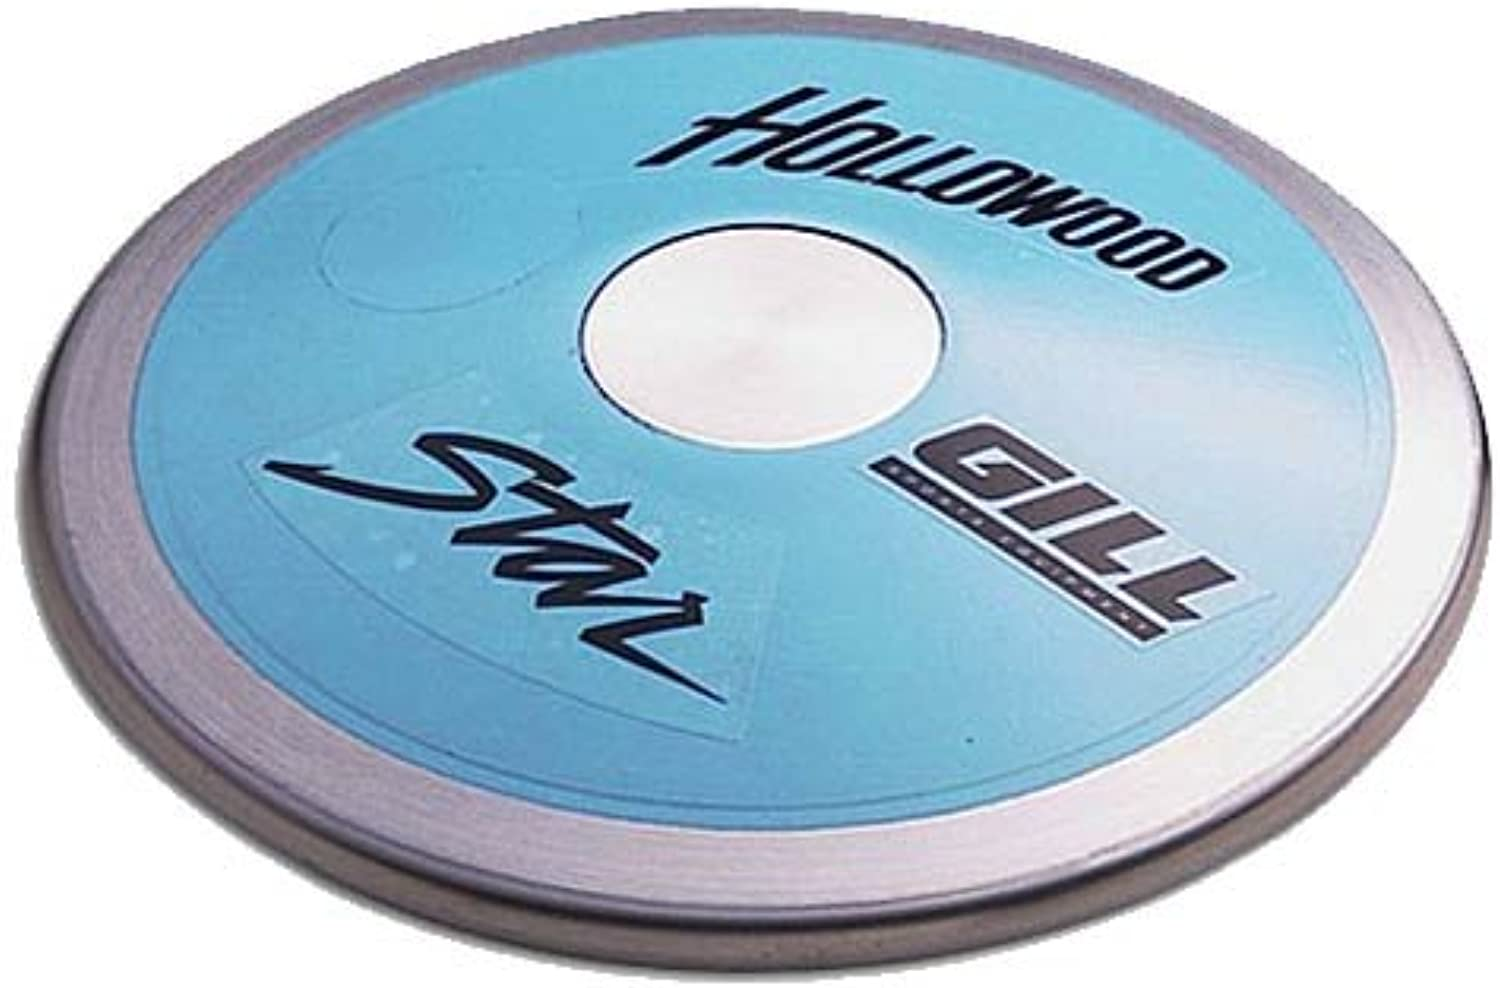 Gill Athletics Hollywood Star Discus, 1.6kg